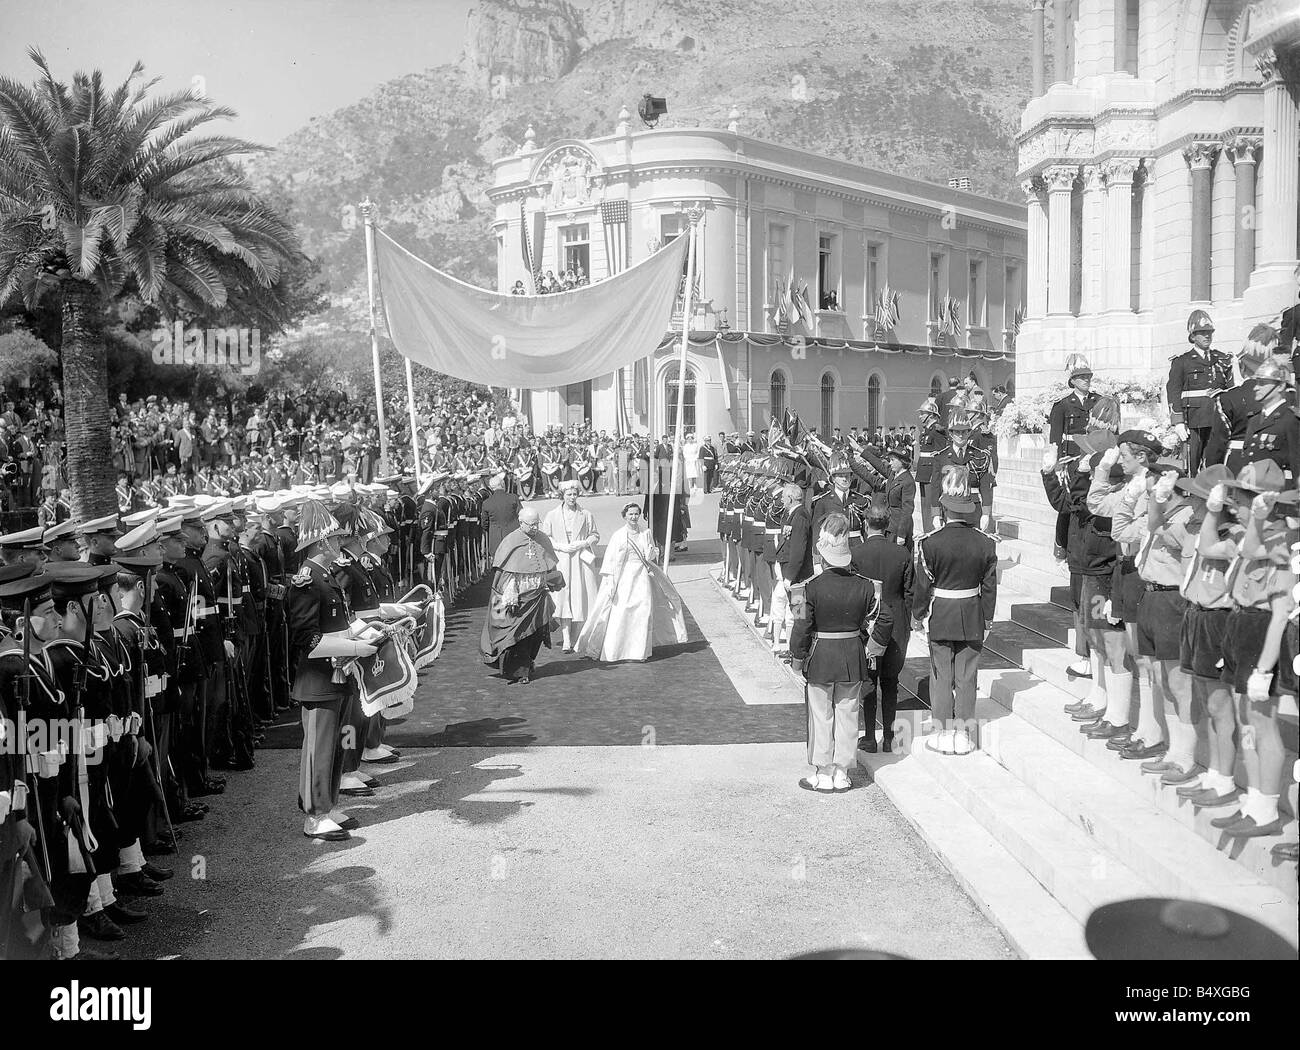 Monaco Prince Rainer April 1956 The wedding of Prince Rainer and Princess Grace Kelly Boy scout - Stock Image